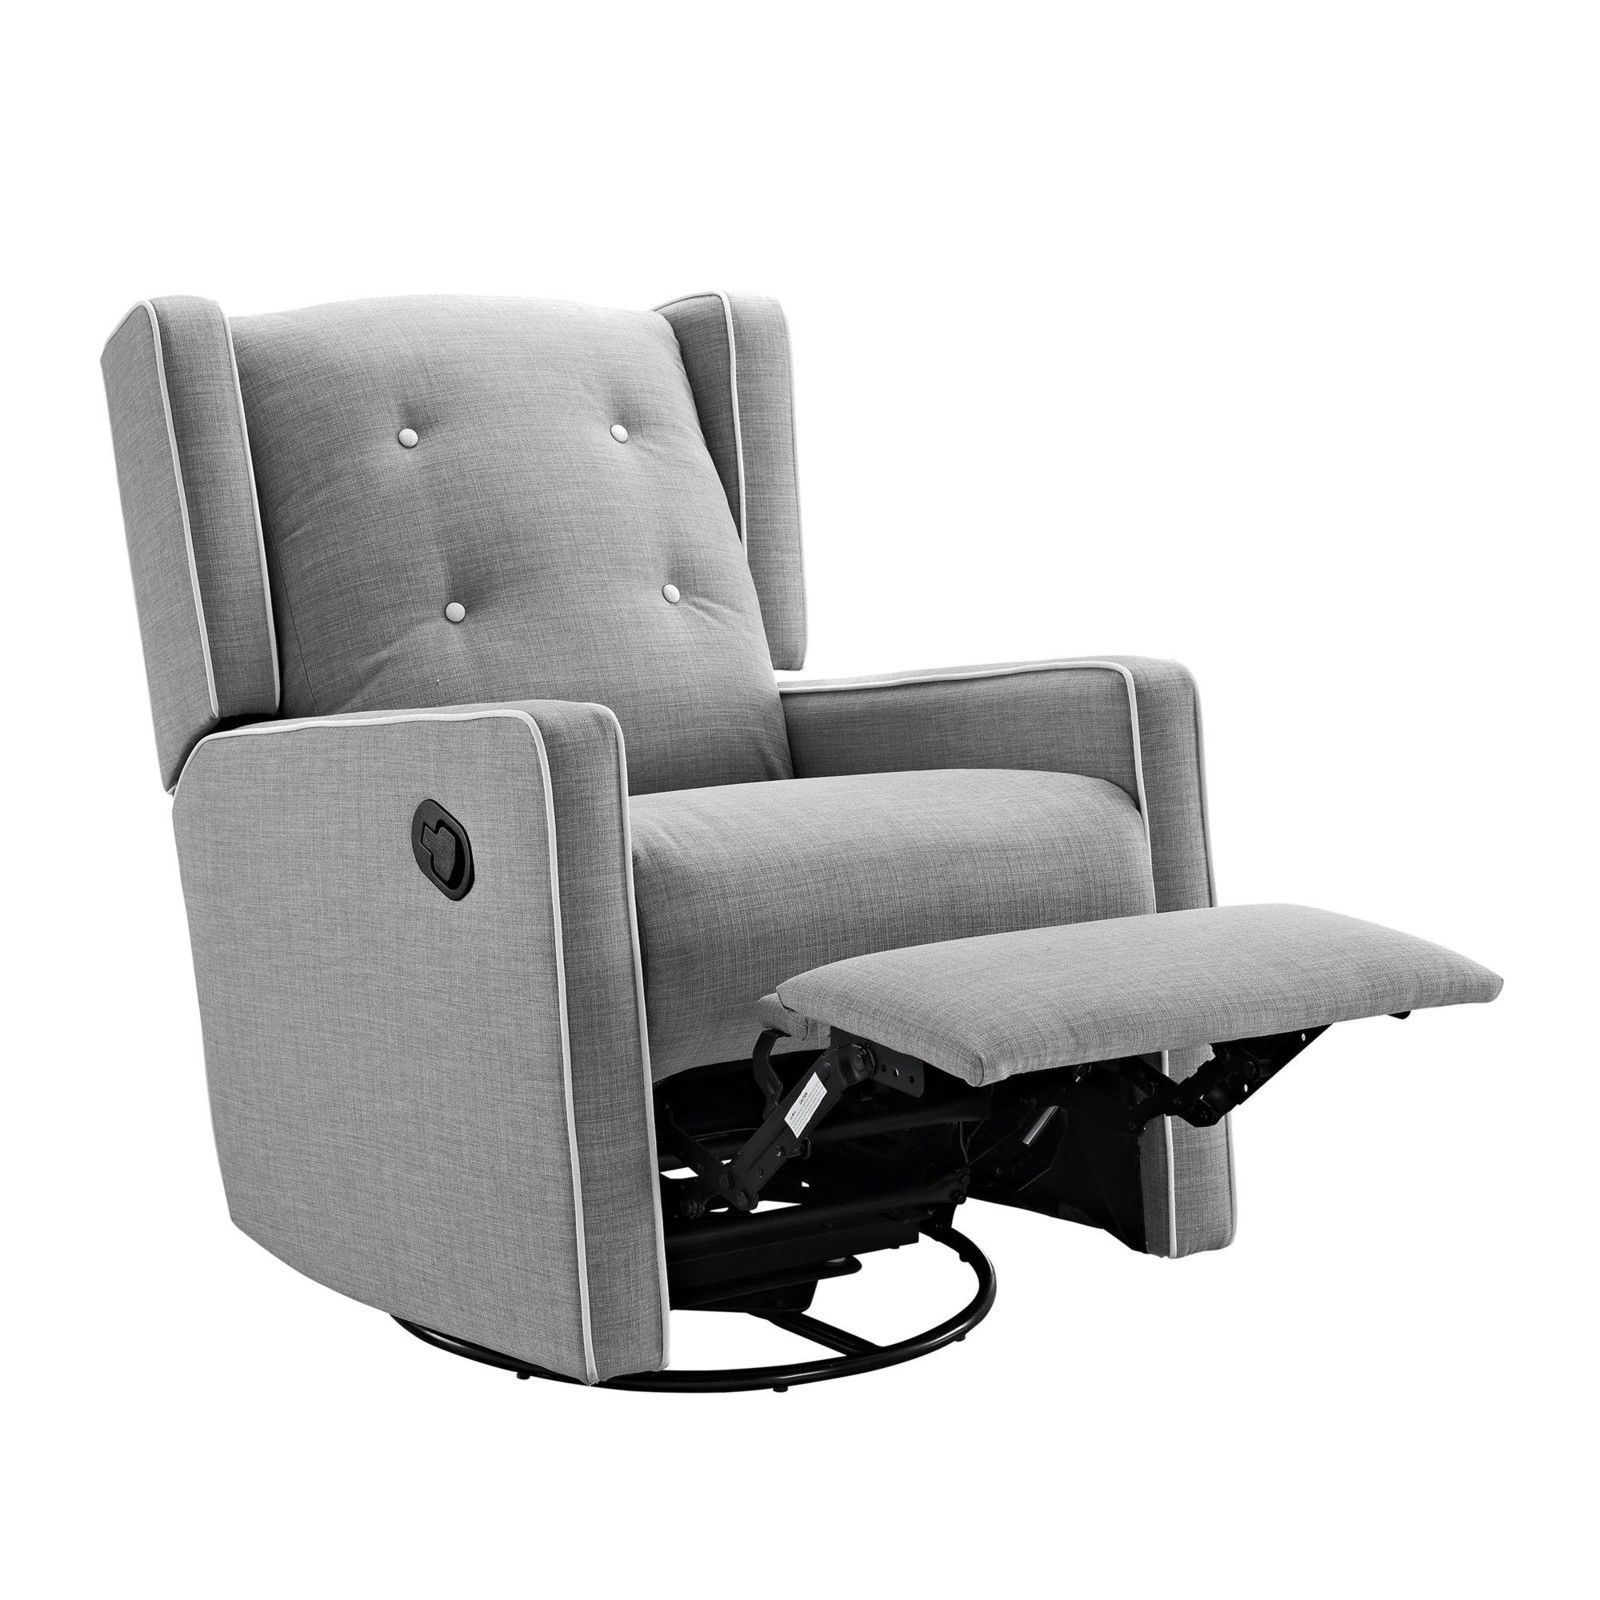 Gray Swivel Gliding Recliner Chair Extra Comfy Parents Baby Relax Nursery  Room